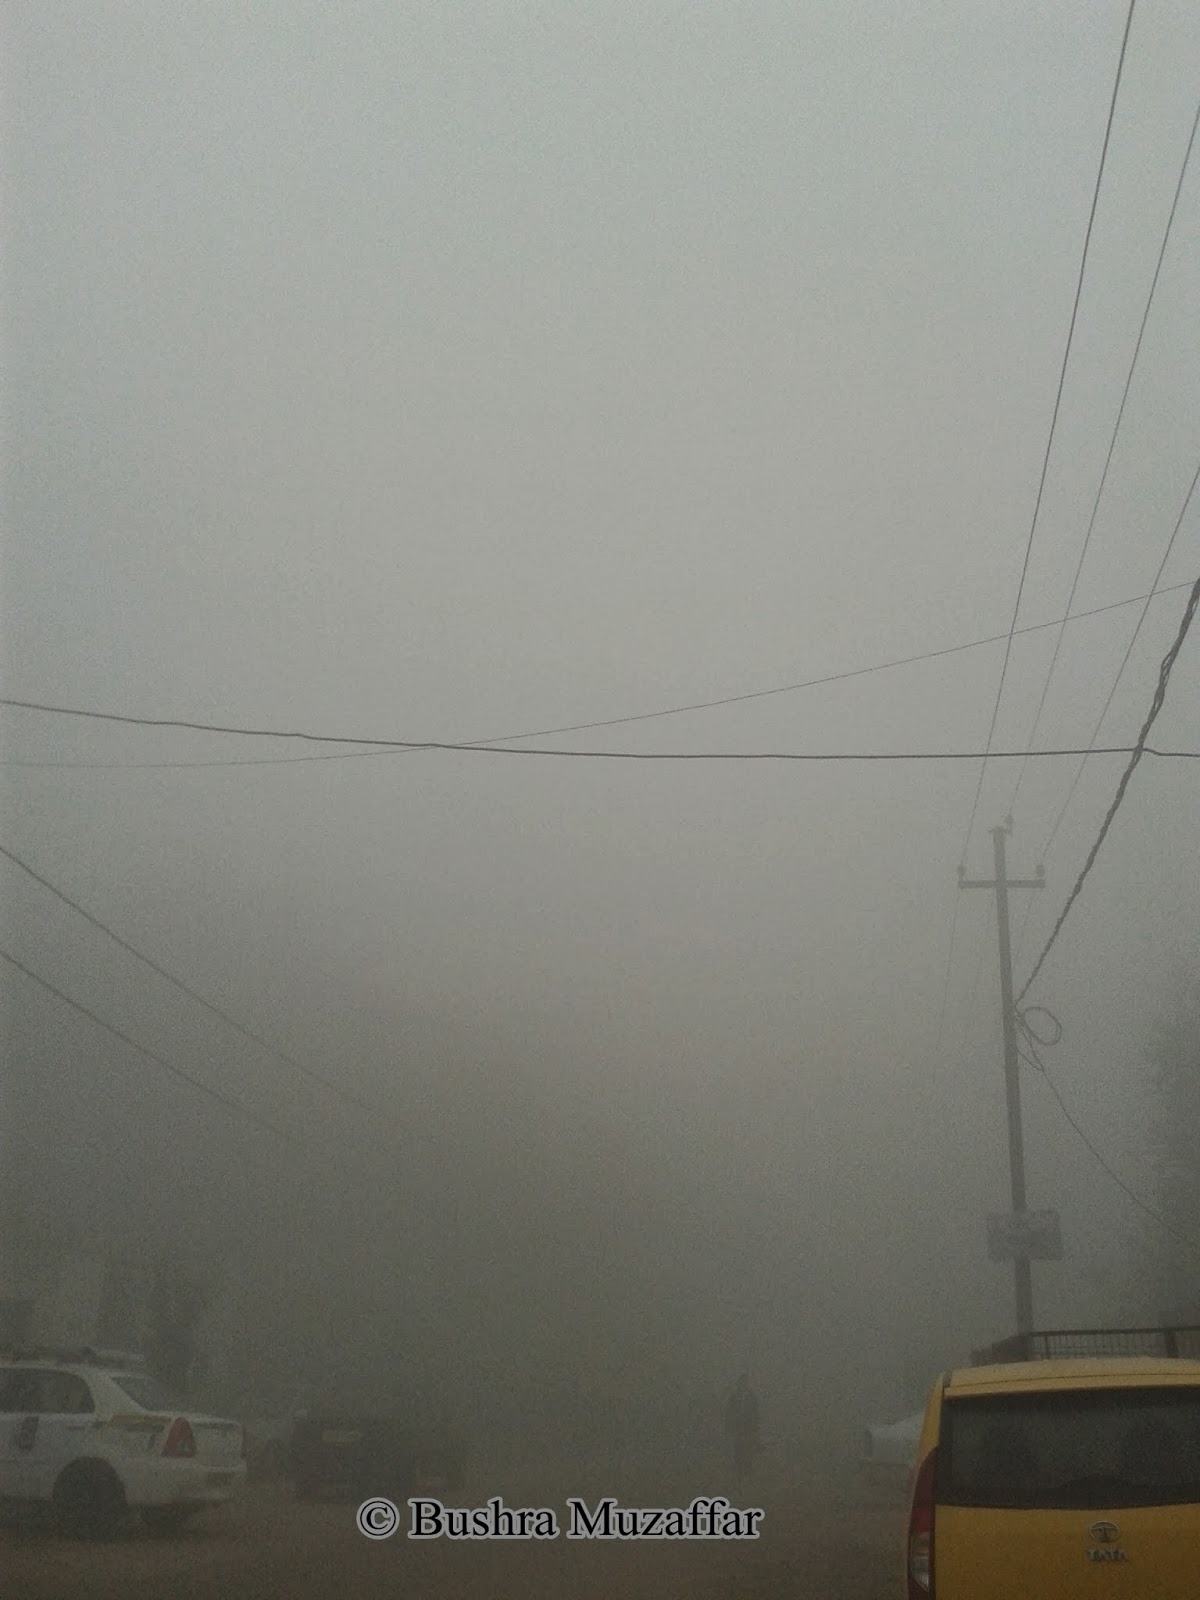 Fog in Noida, December 2013